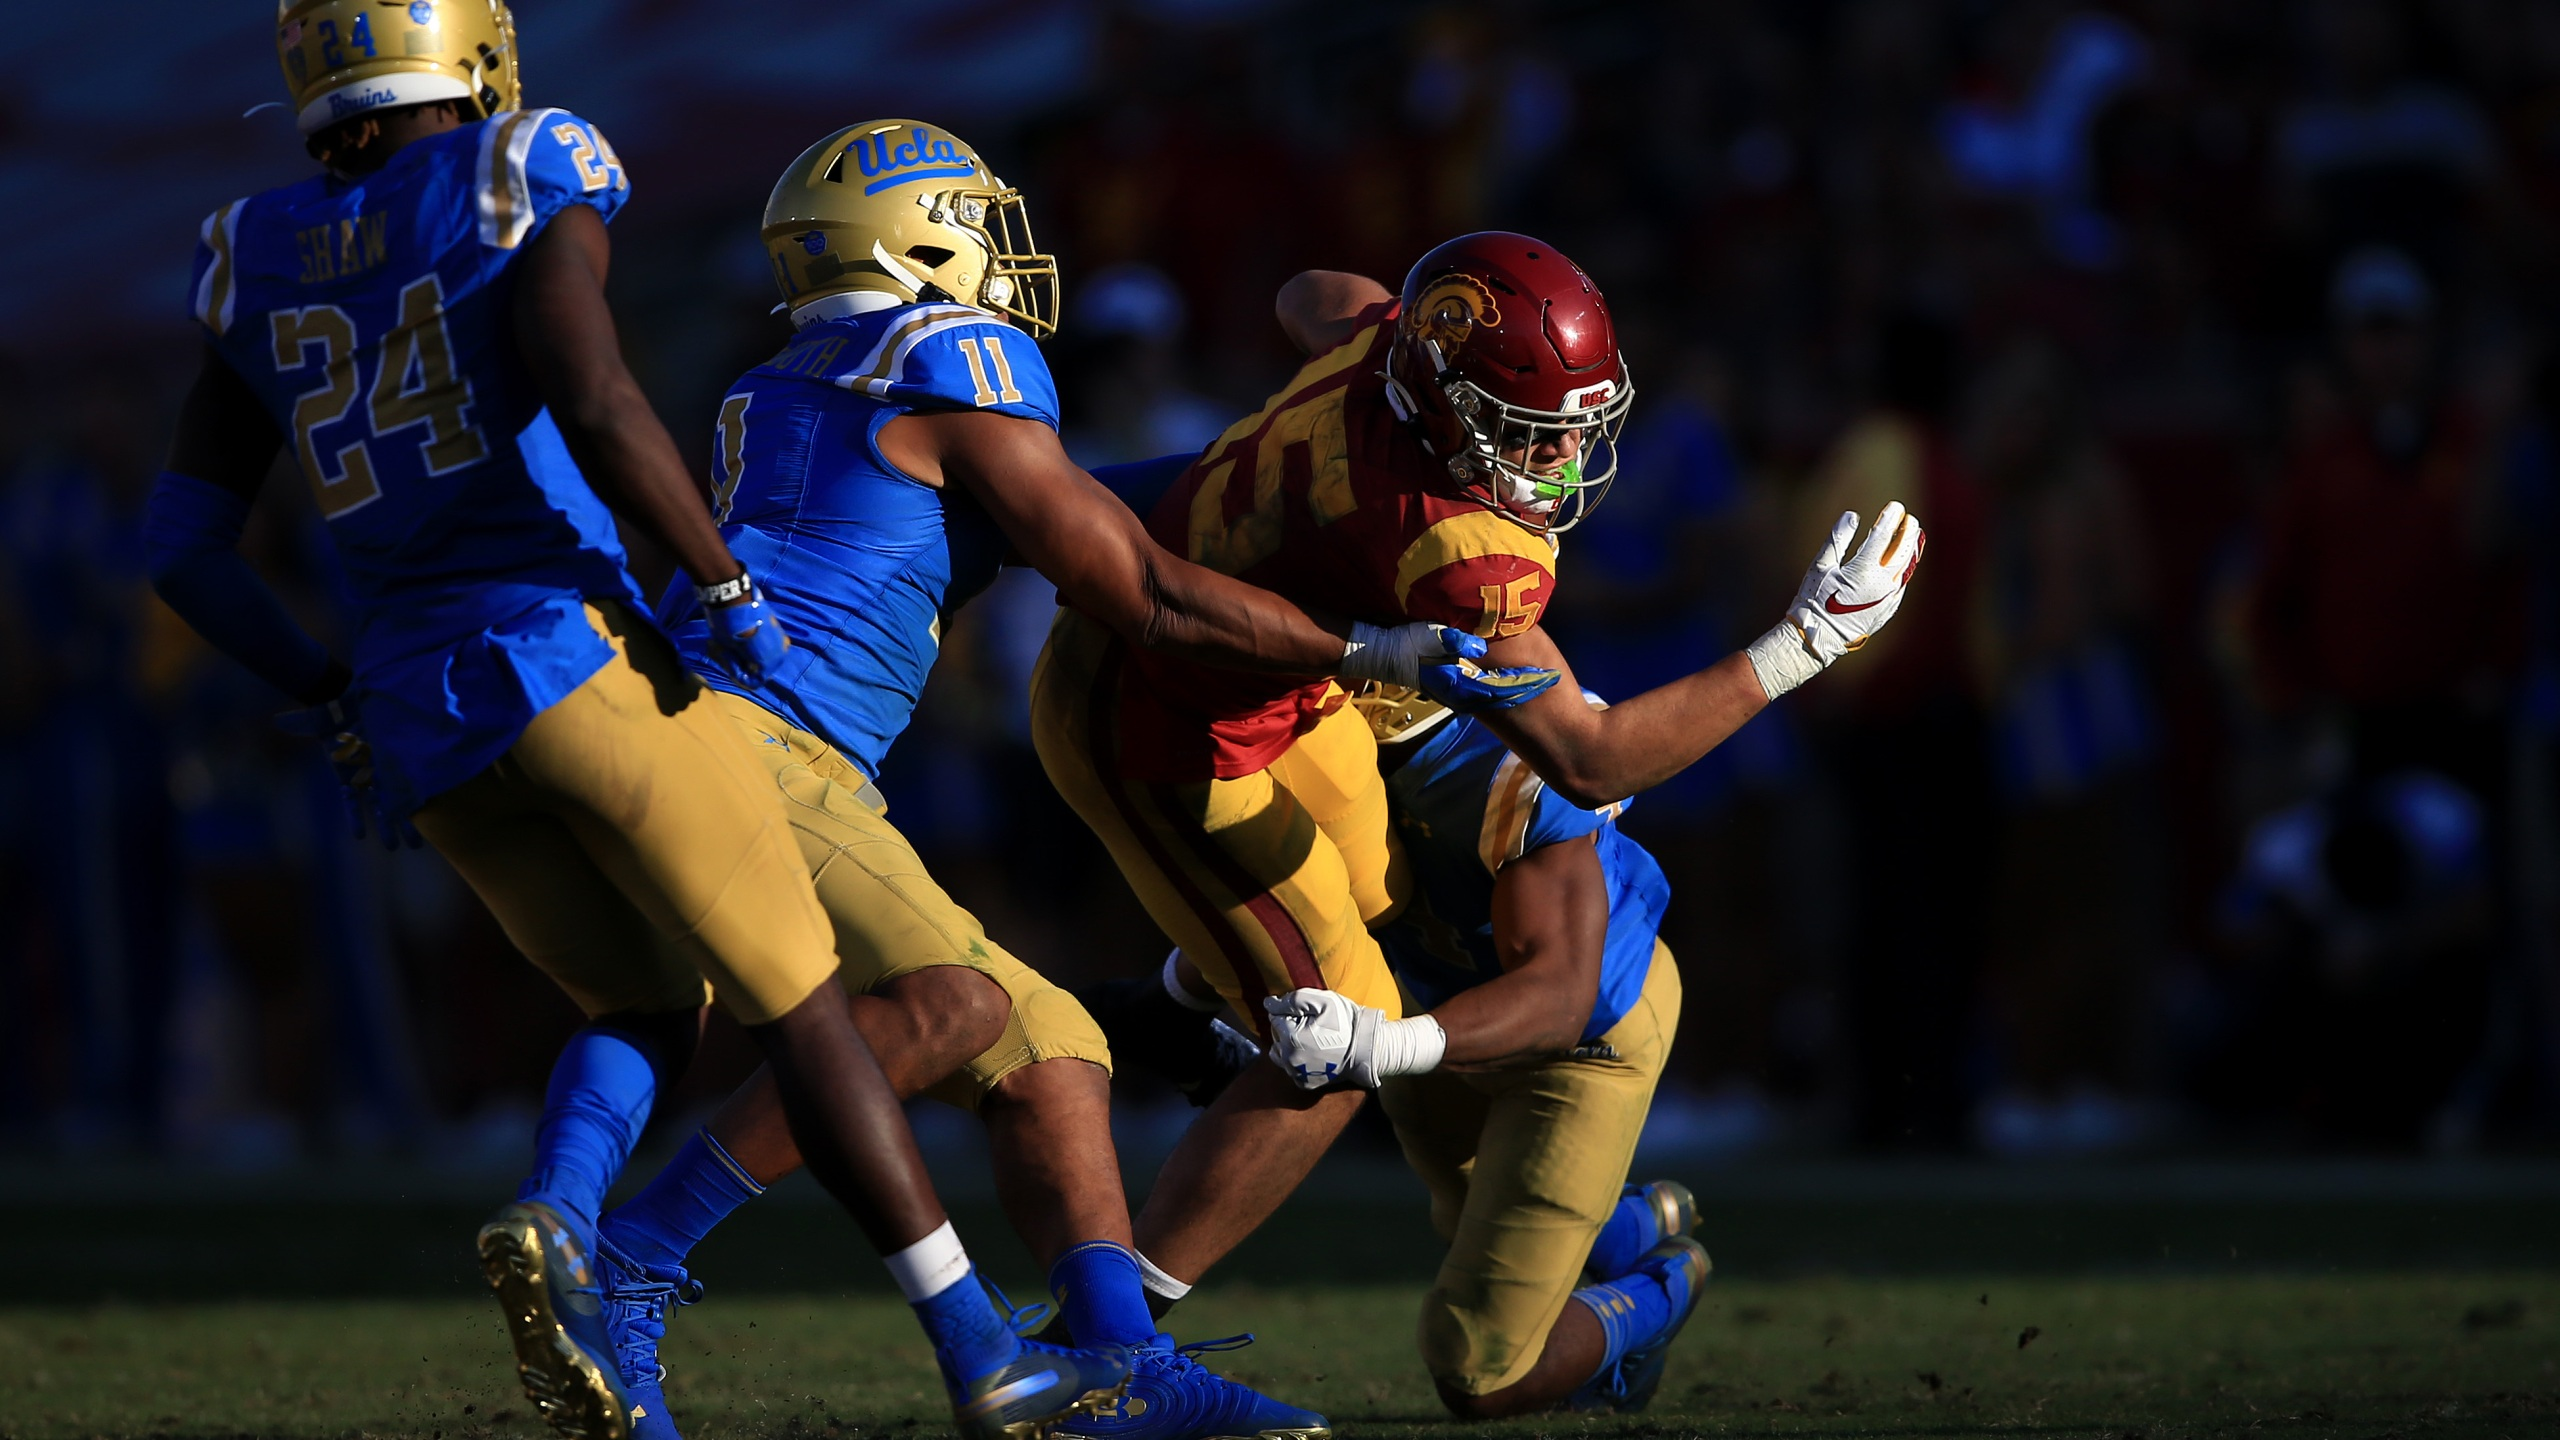 Stephan Blaylock #4, Drake London #15 of the USC Trojans is tackled by Keisean Lucier-South #11 and Jay Shaw #24 of the UCLA Bruins during the second half of a game at Memorial Coliseum on Nov. 23, 2019 in Los Angeles. (Sean M. Haffey/Getty Images)